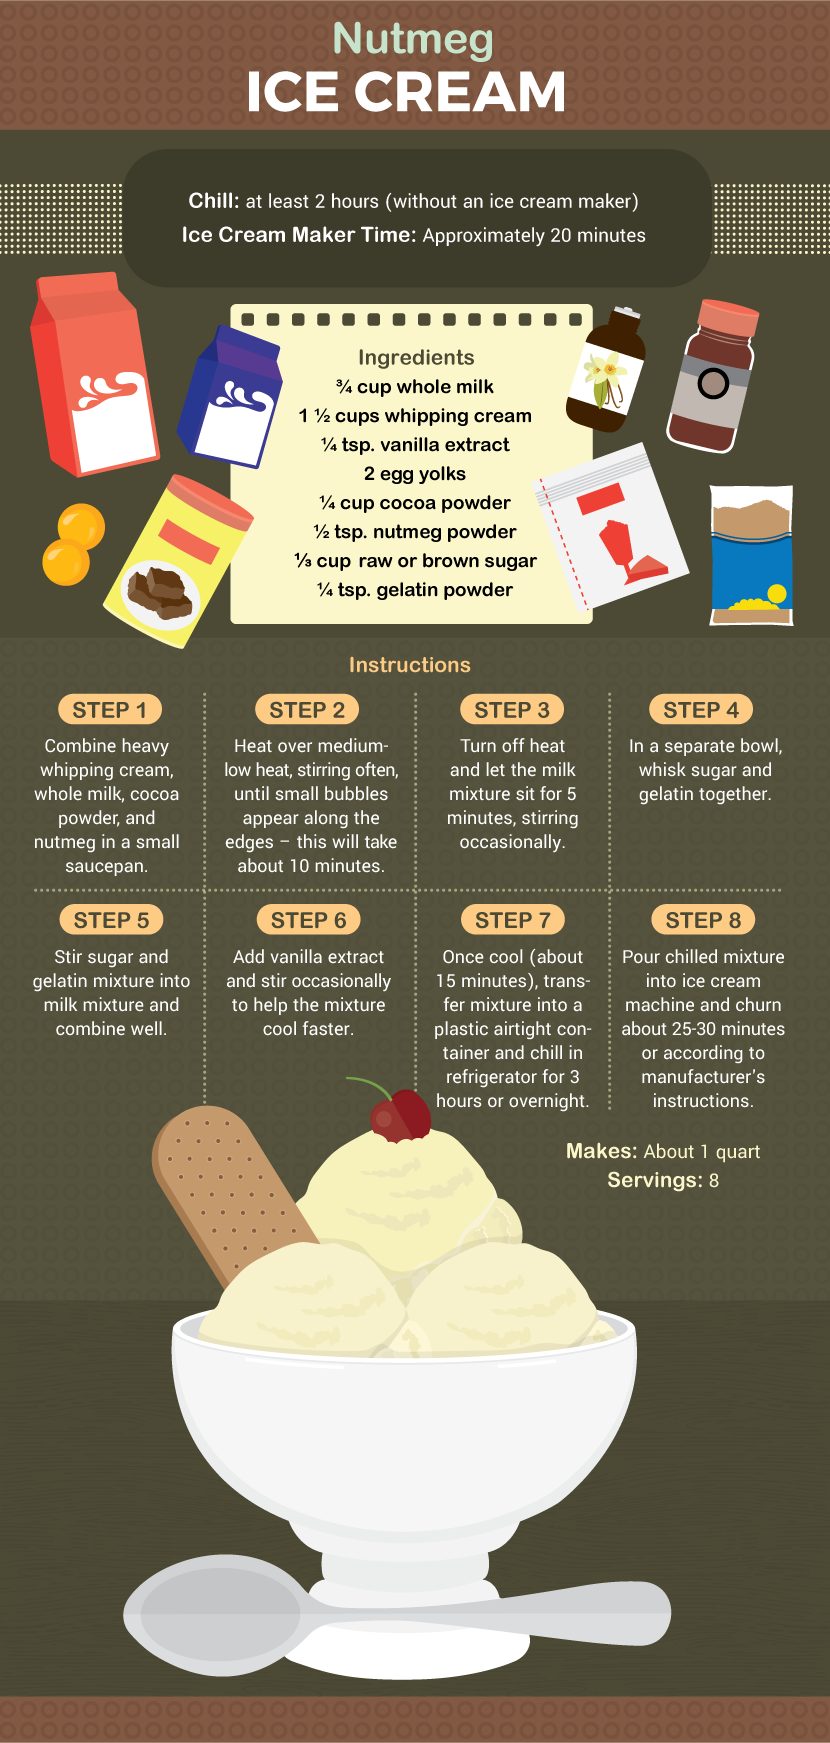 Nutmeg Ice Cream Recipe